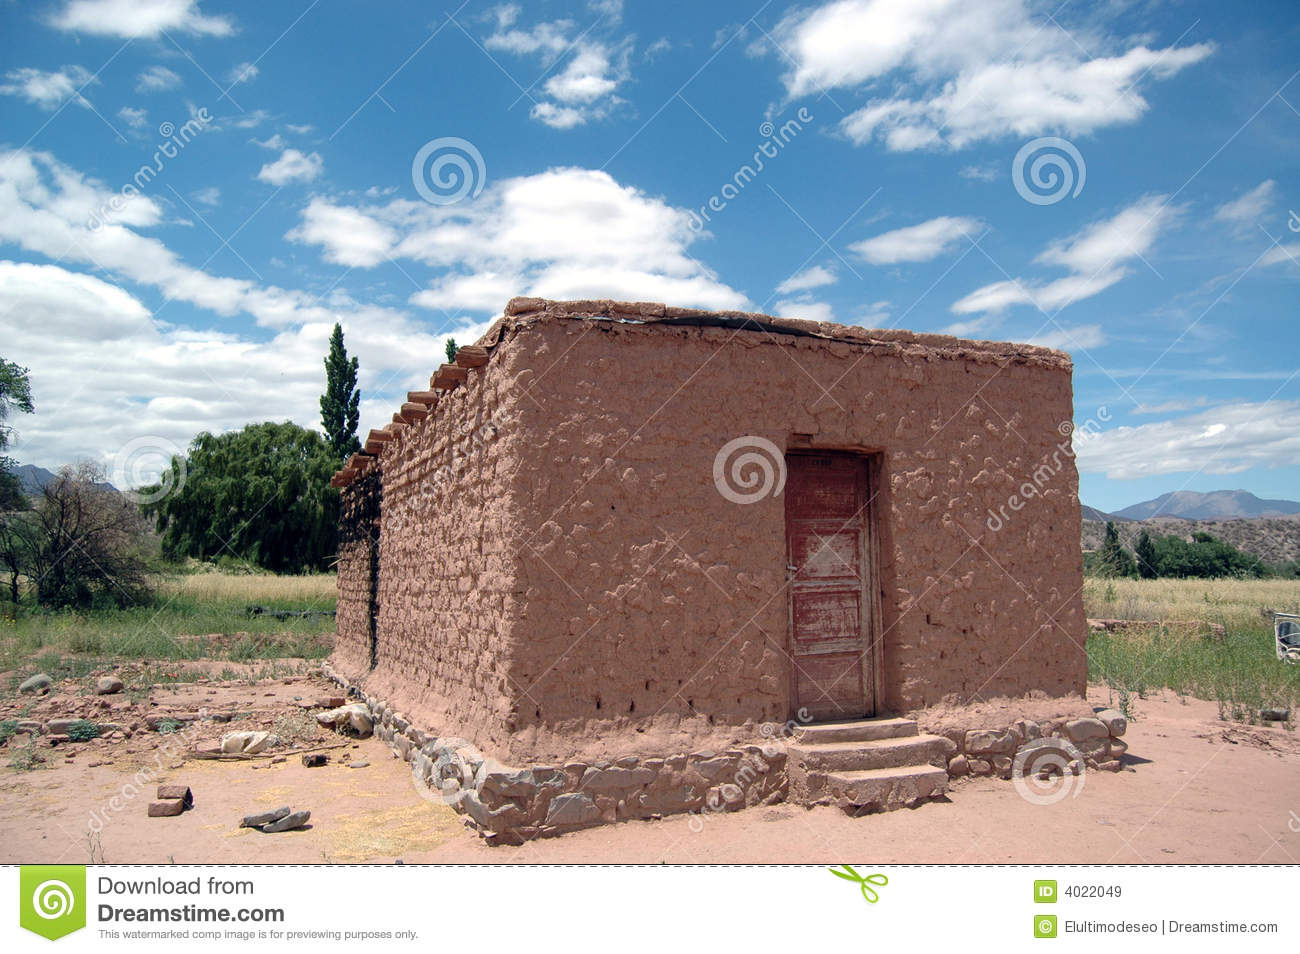 Adobe house royalty free stock images image 4022049 for Adobe home construction